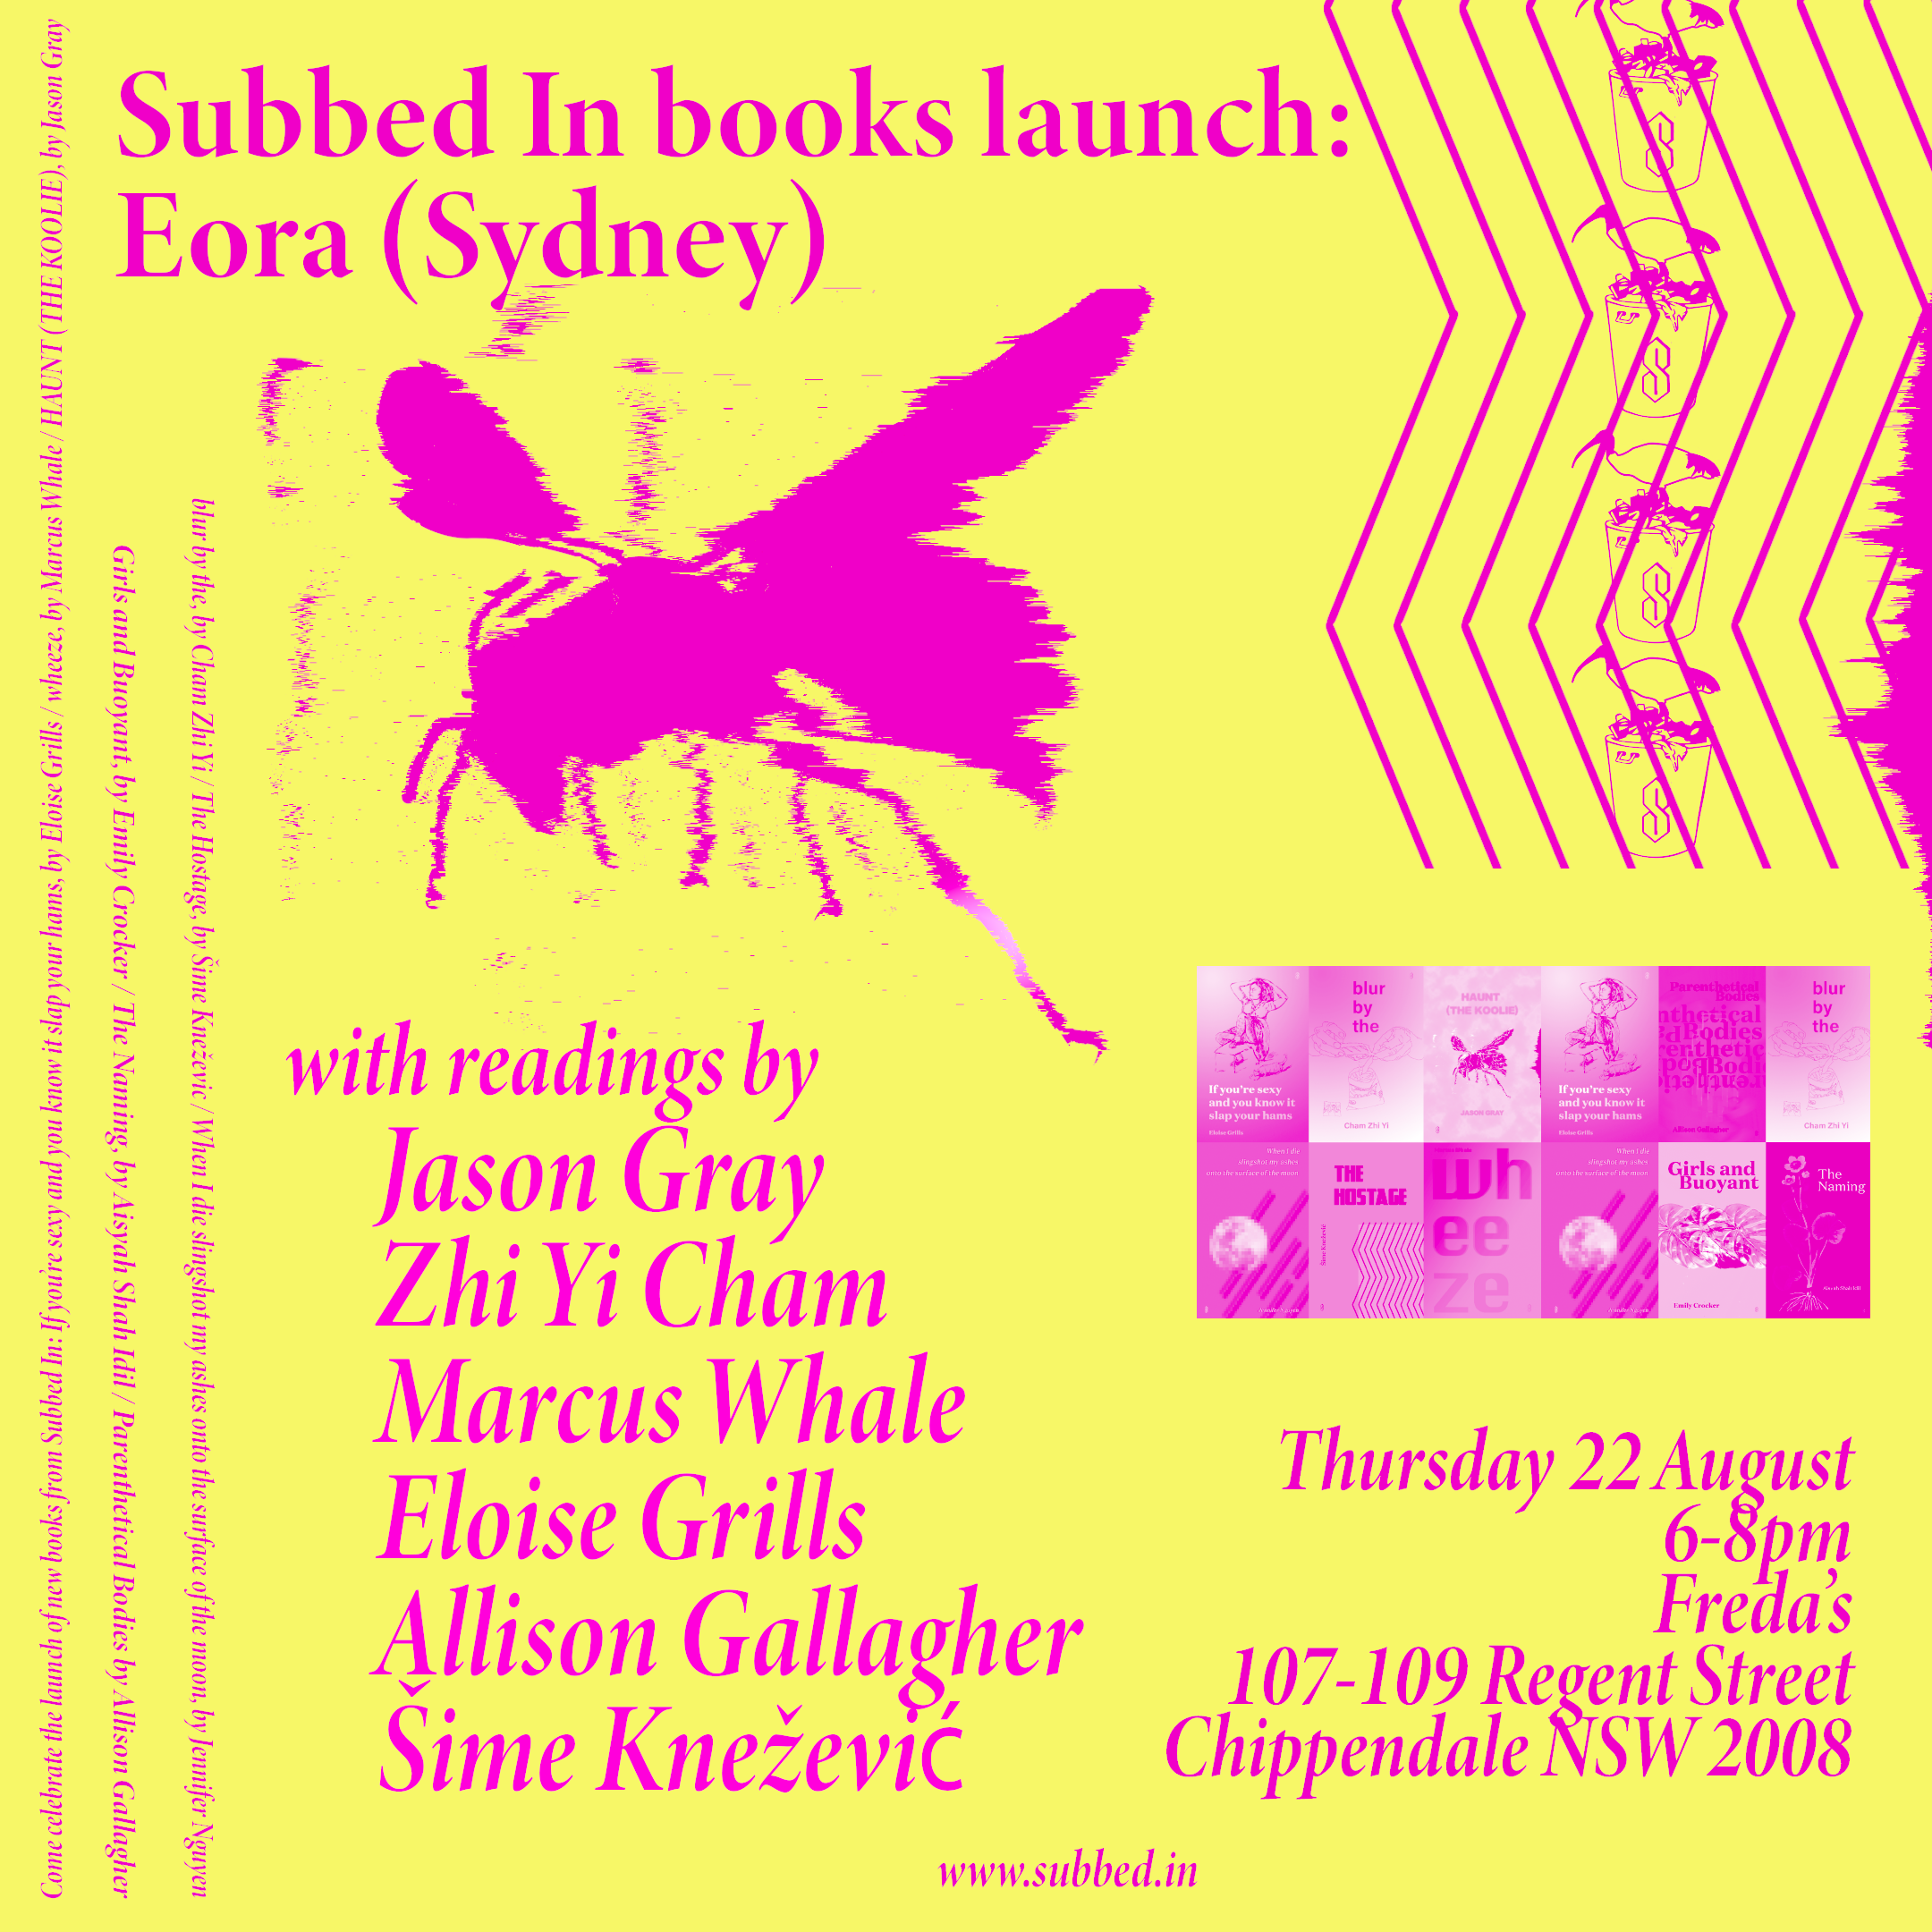 Eora launch poster_SQUARE.png